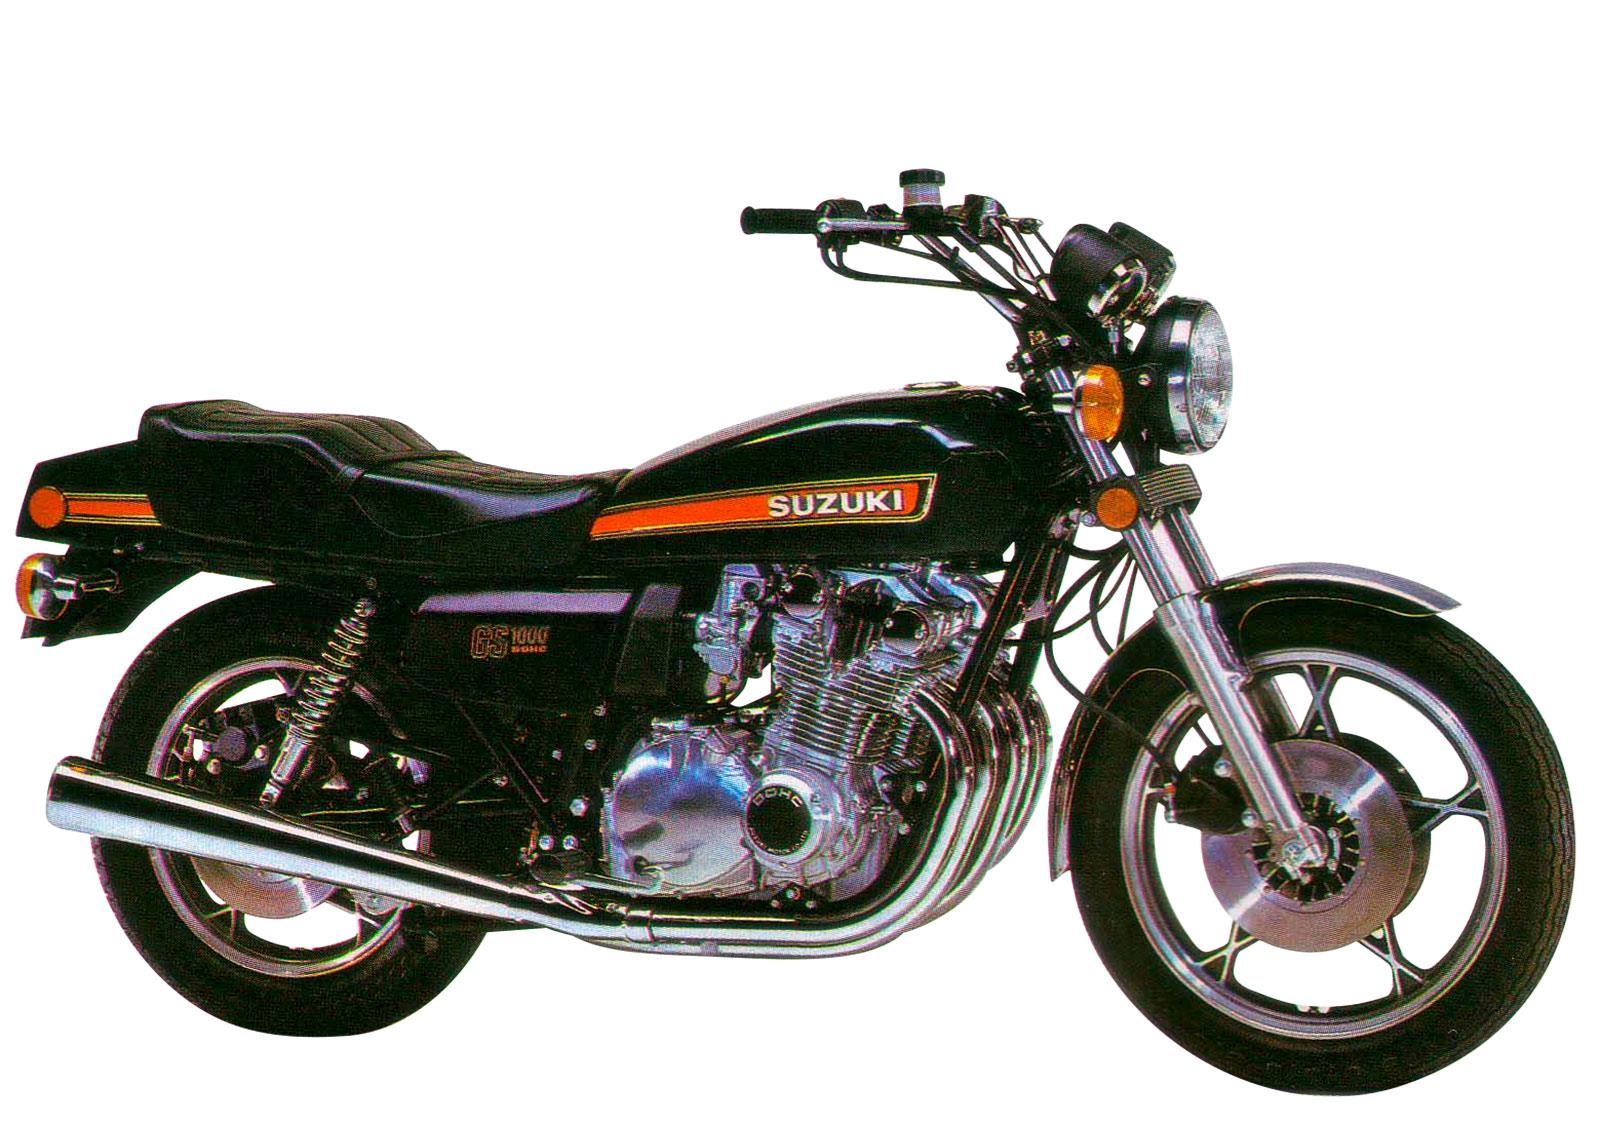 Suzukis First Ever Litre Bike The Gs1000 Engine Stripped Harley Davidson Firing Order Diagram Share This Article